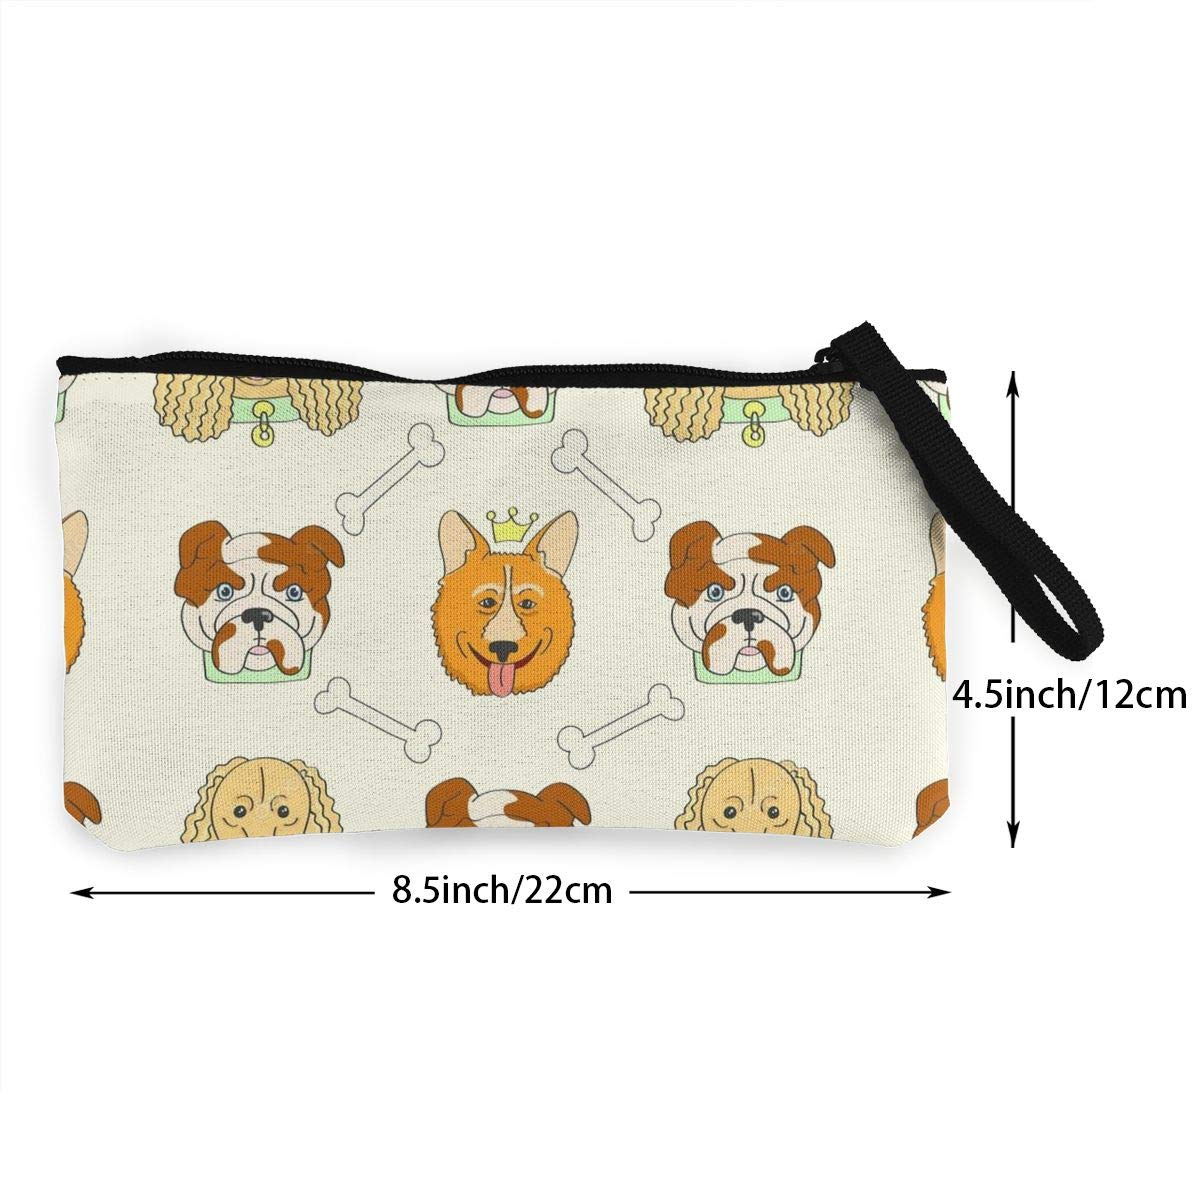 Make Up Bag Cellphone Bag With Handle DH14hjsdDEE Cachorros Padrao Fundo zipper canvas coin purse wallet